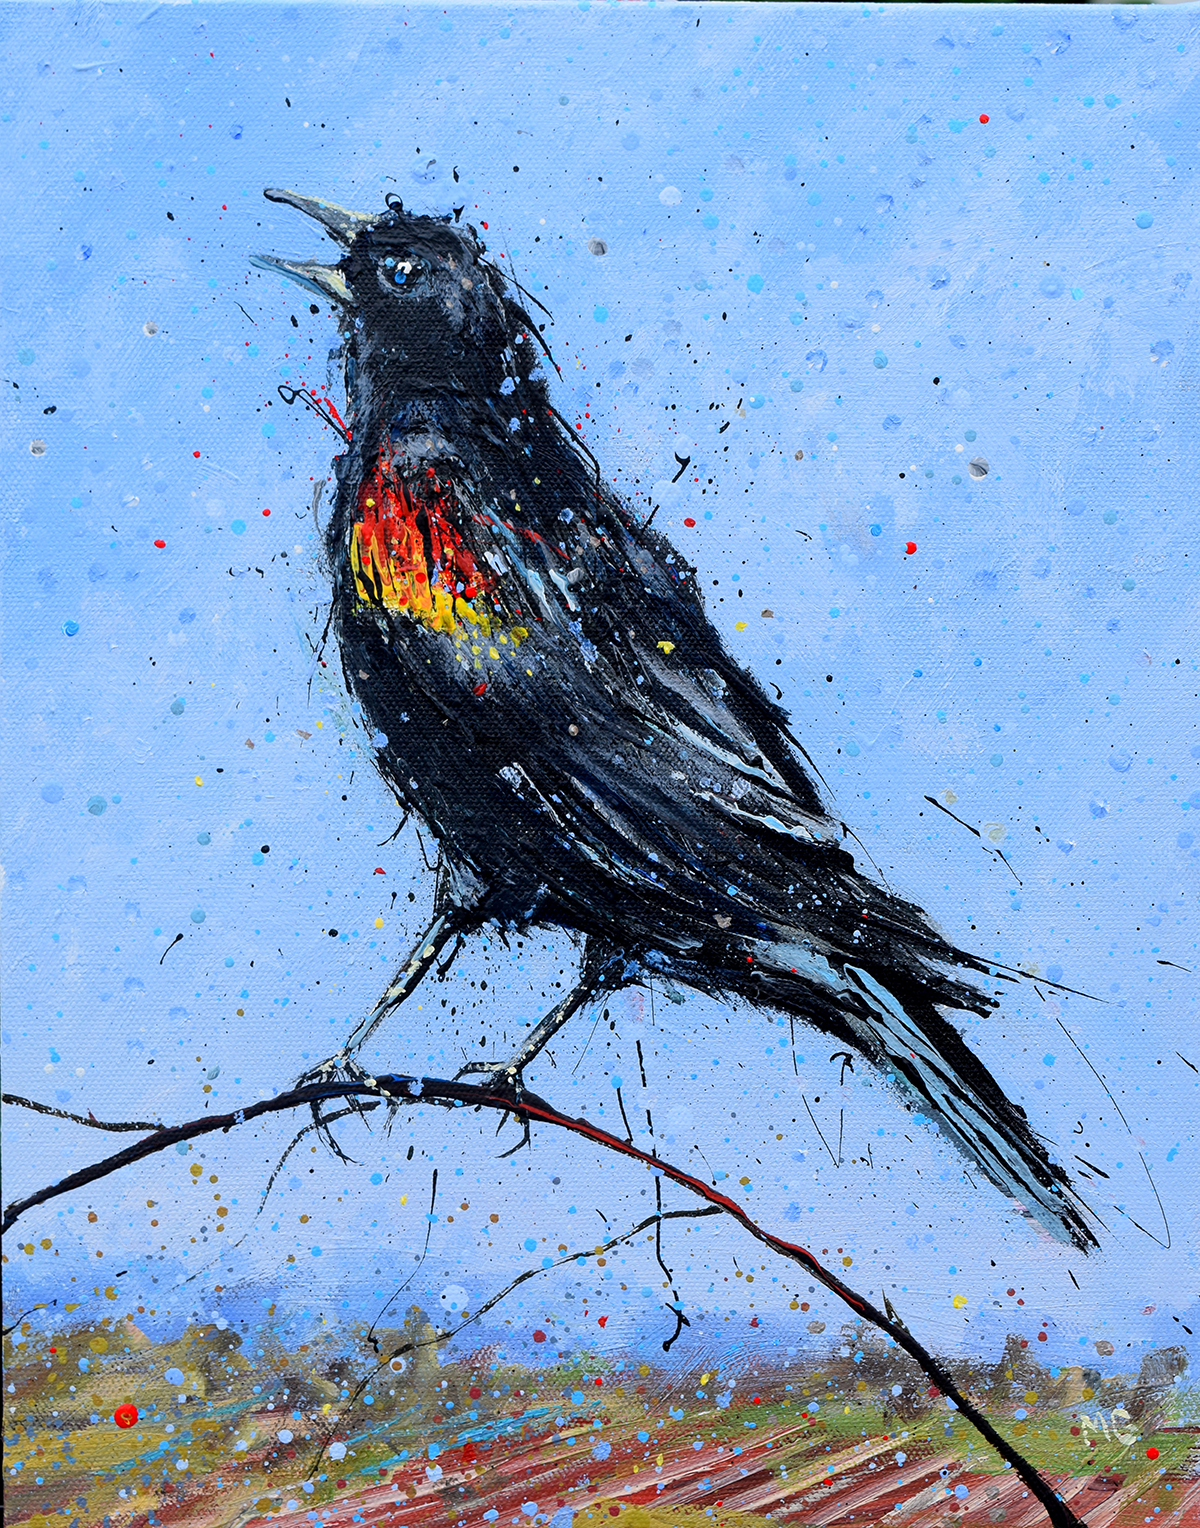 He sings for Spring. Redwing Blackbird. Artist:Michael Glass